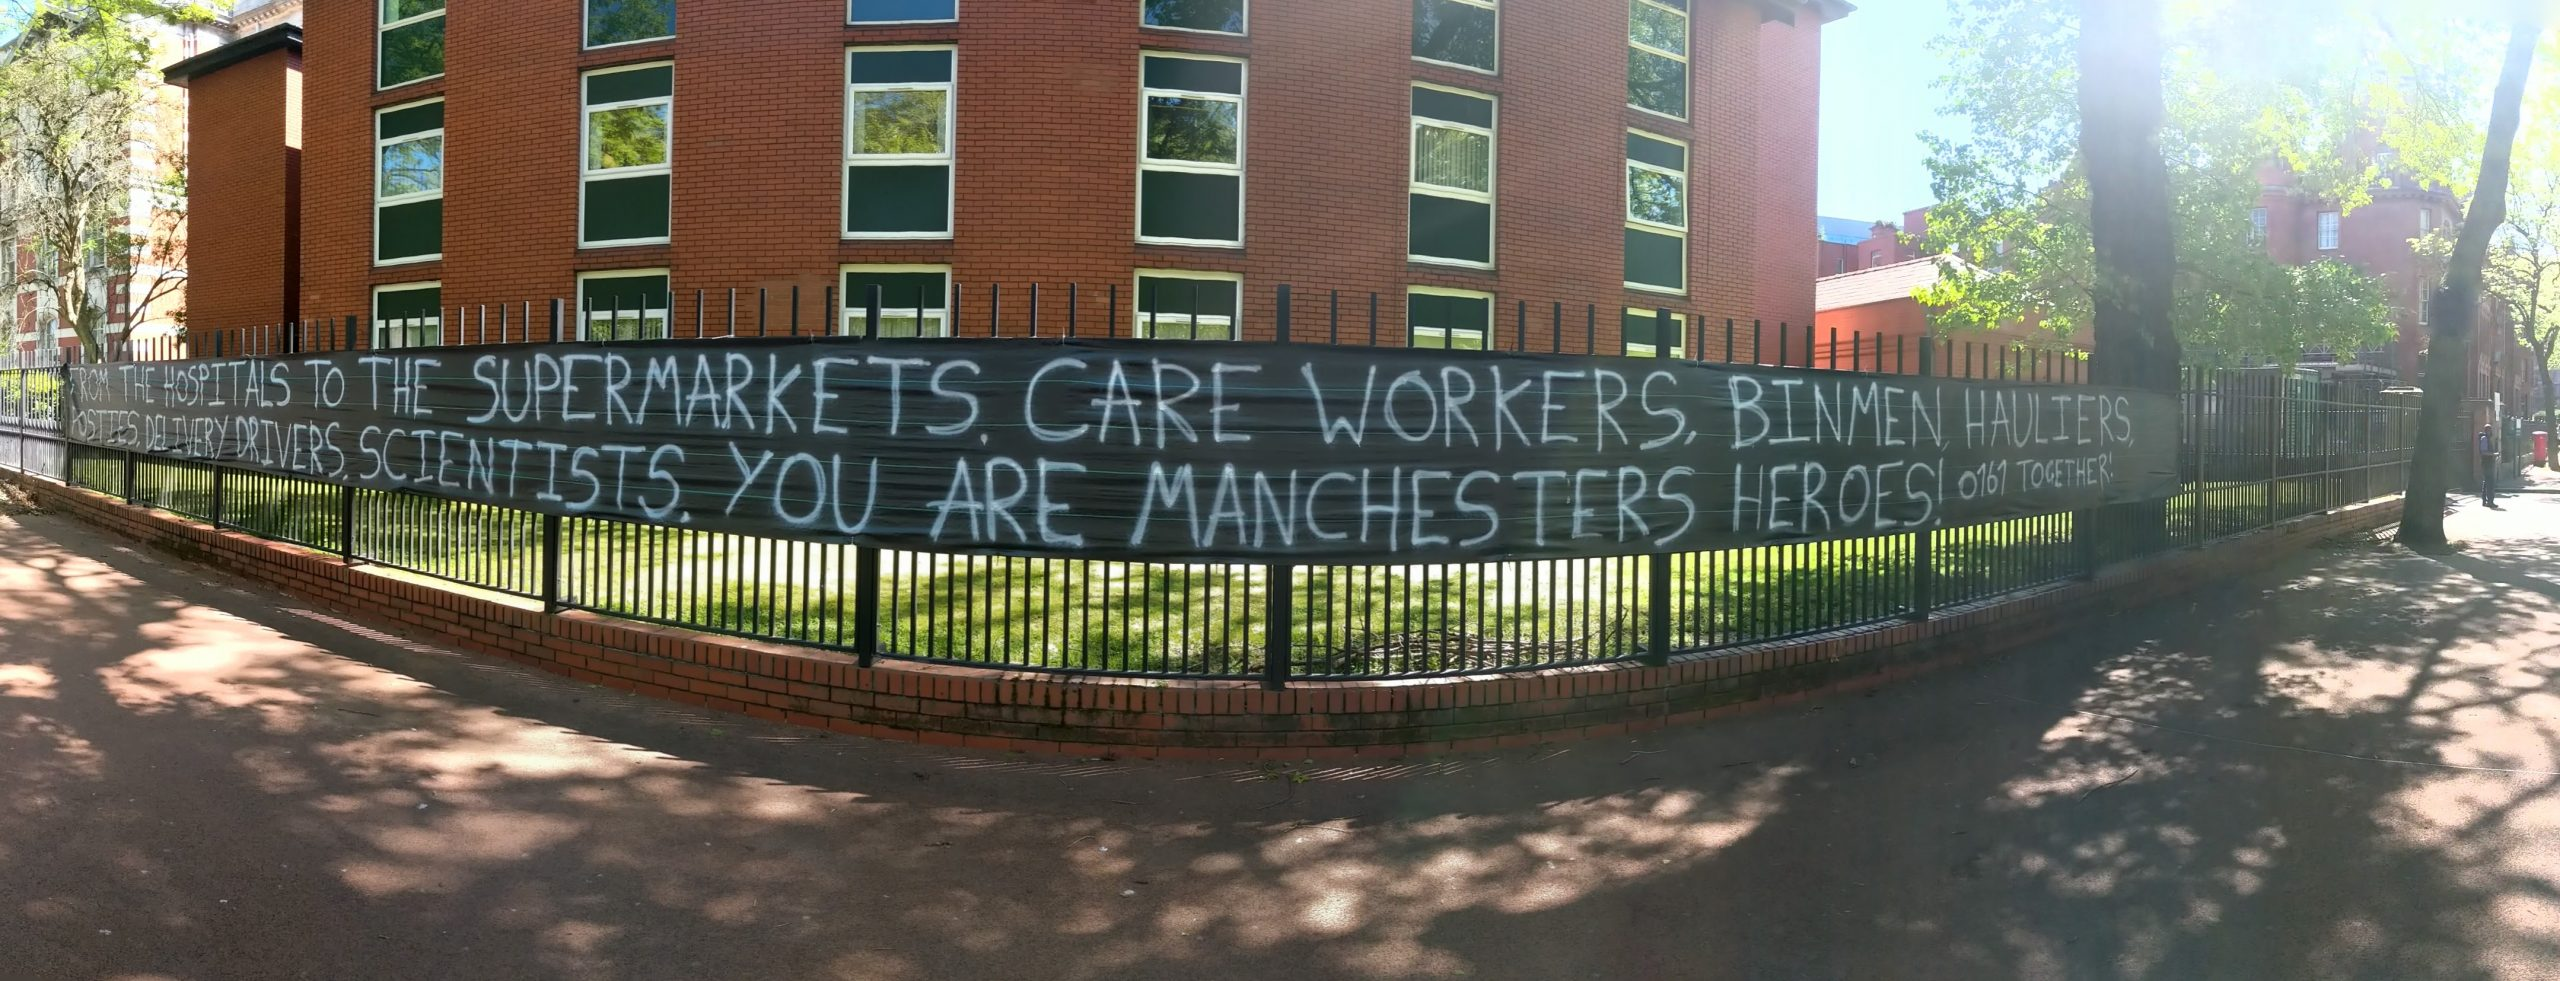 Banner thanking key workers in Manchester